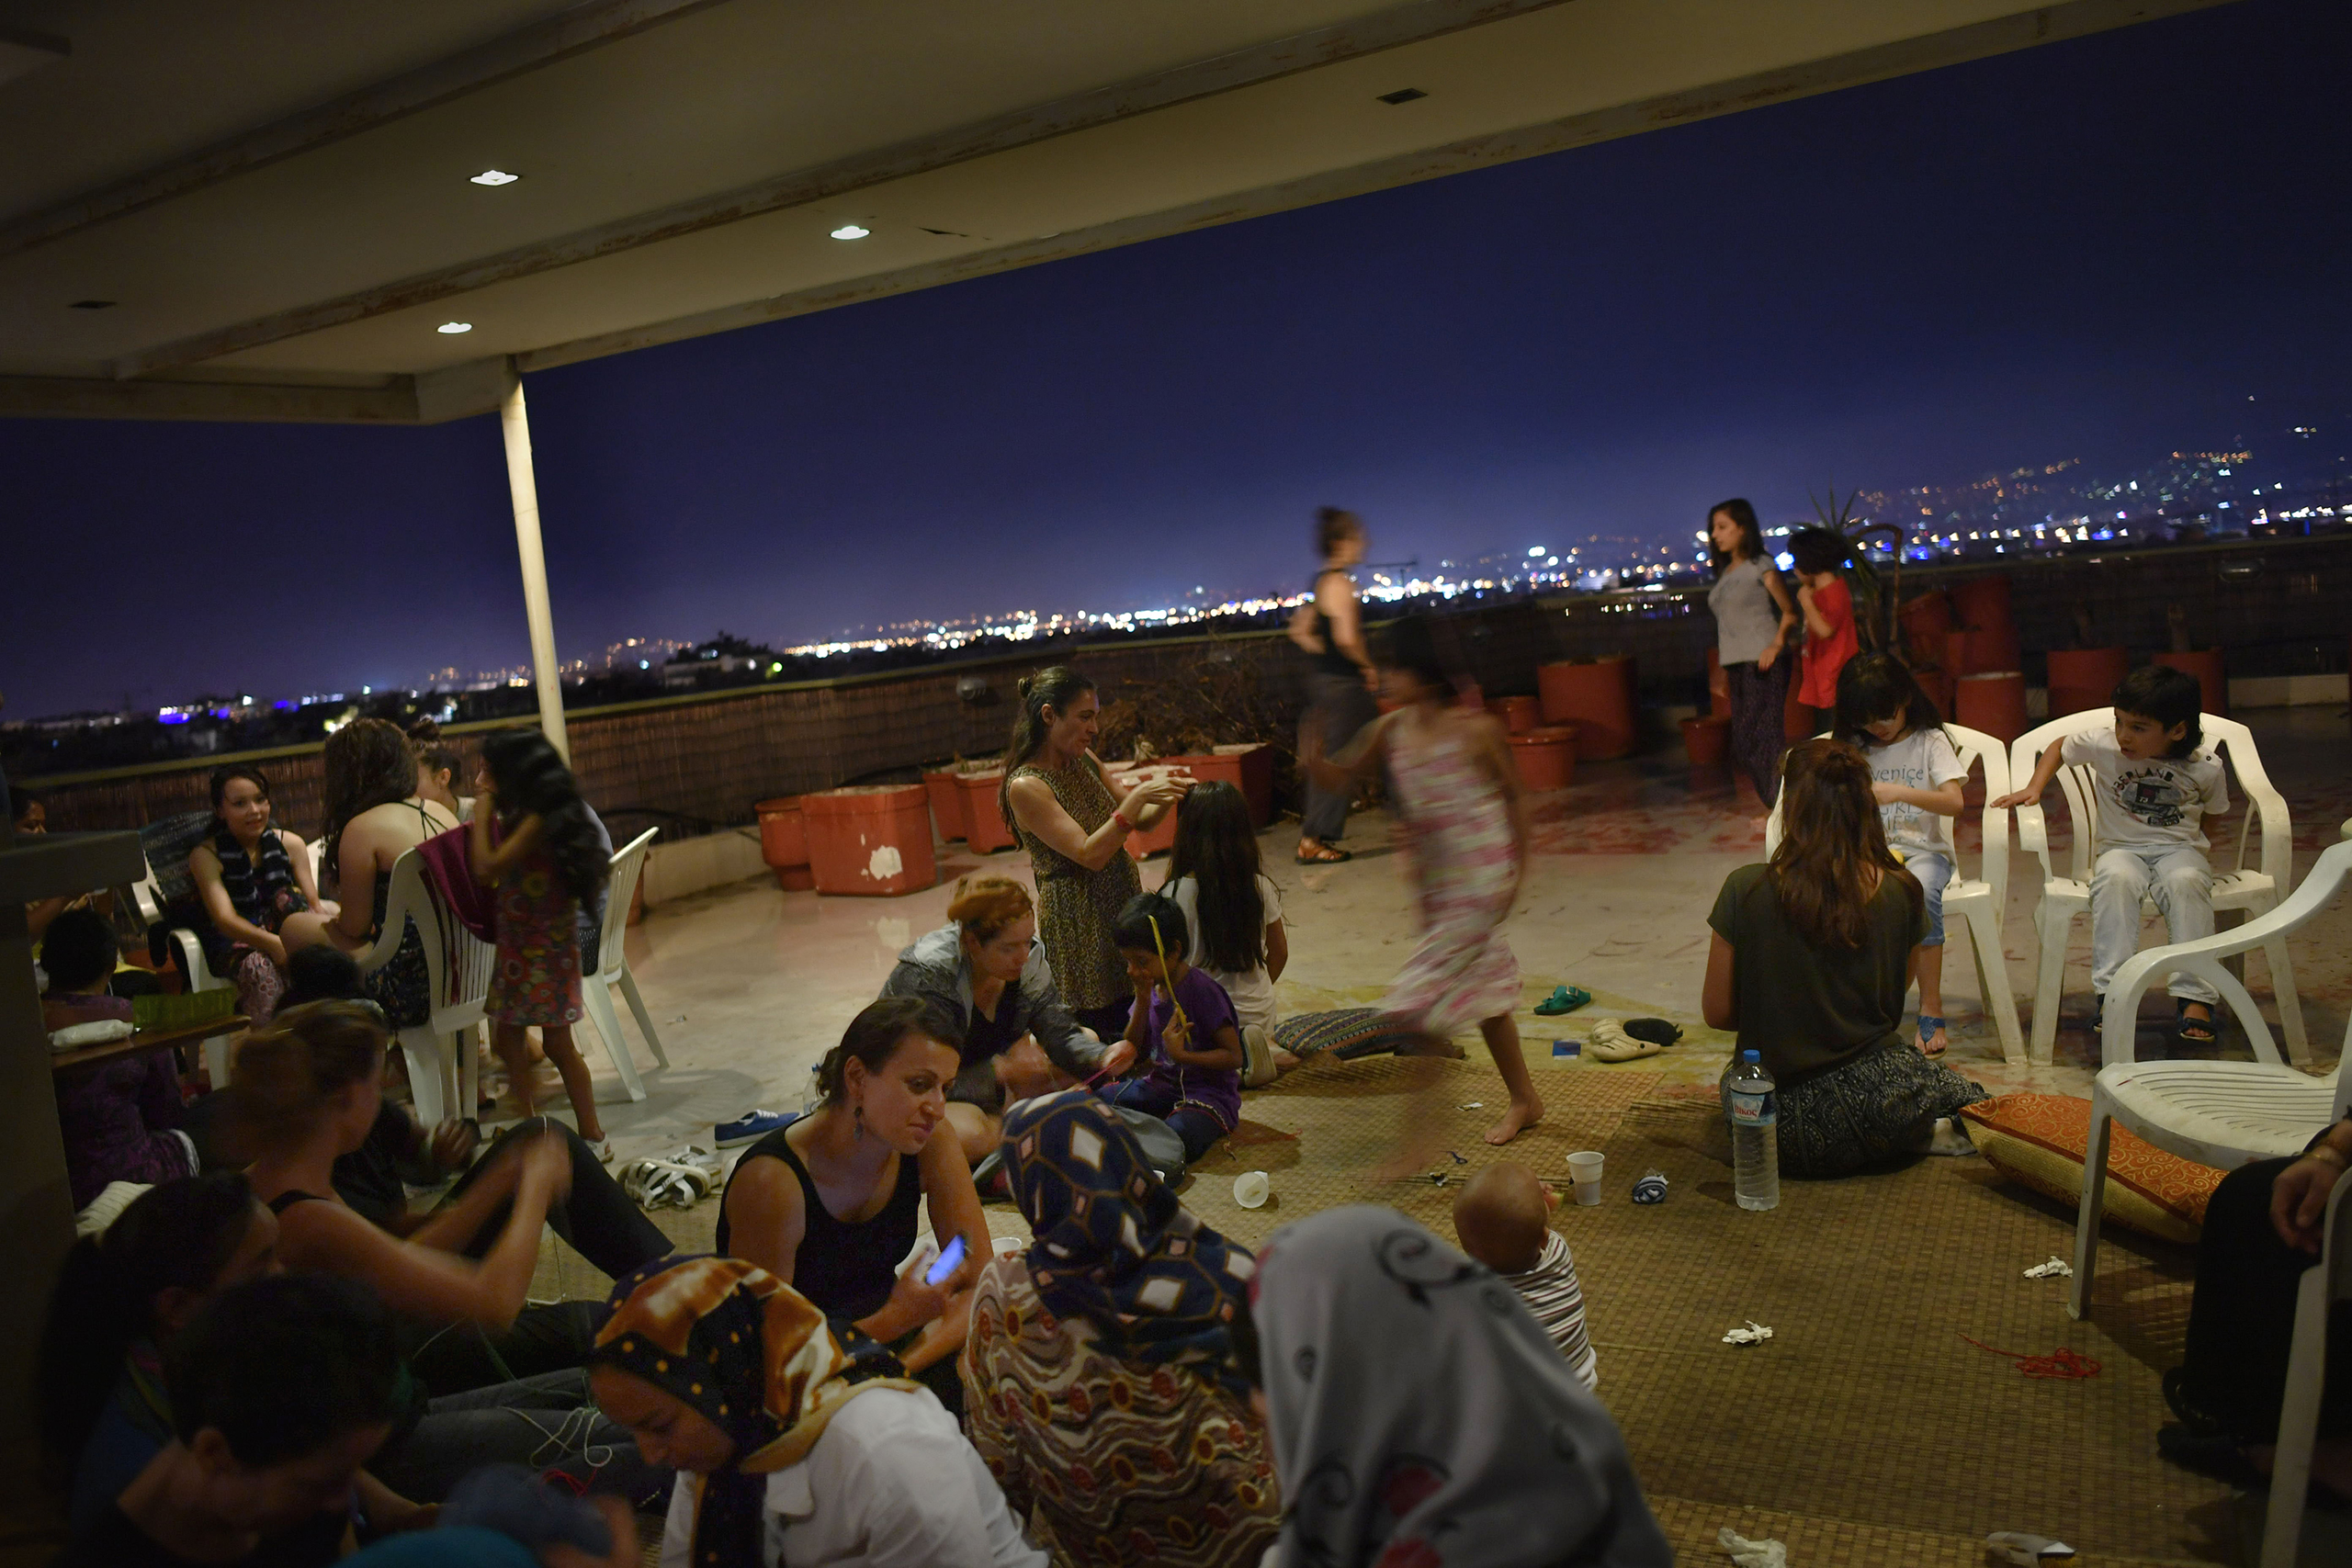 Refugee residents of the hotel organize a women-only dance party several nights a week on the rooftop terrace. It's an opportunity for the women, many of them conservative Muslims from Syria, Iraq and Afghanistan, to relax, take off their headscarves and smoke hookah without worrying about prying male eyes.